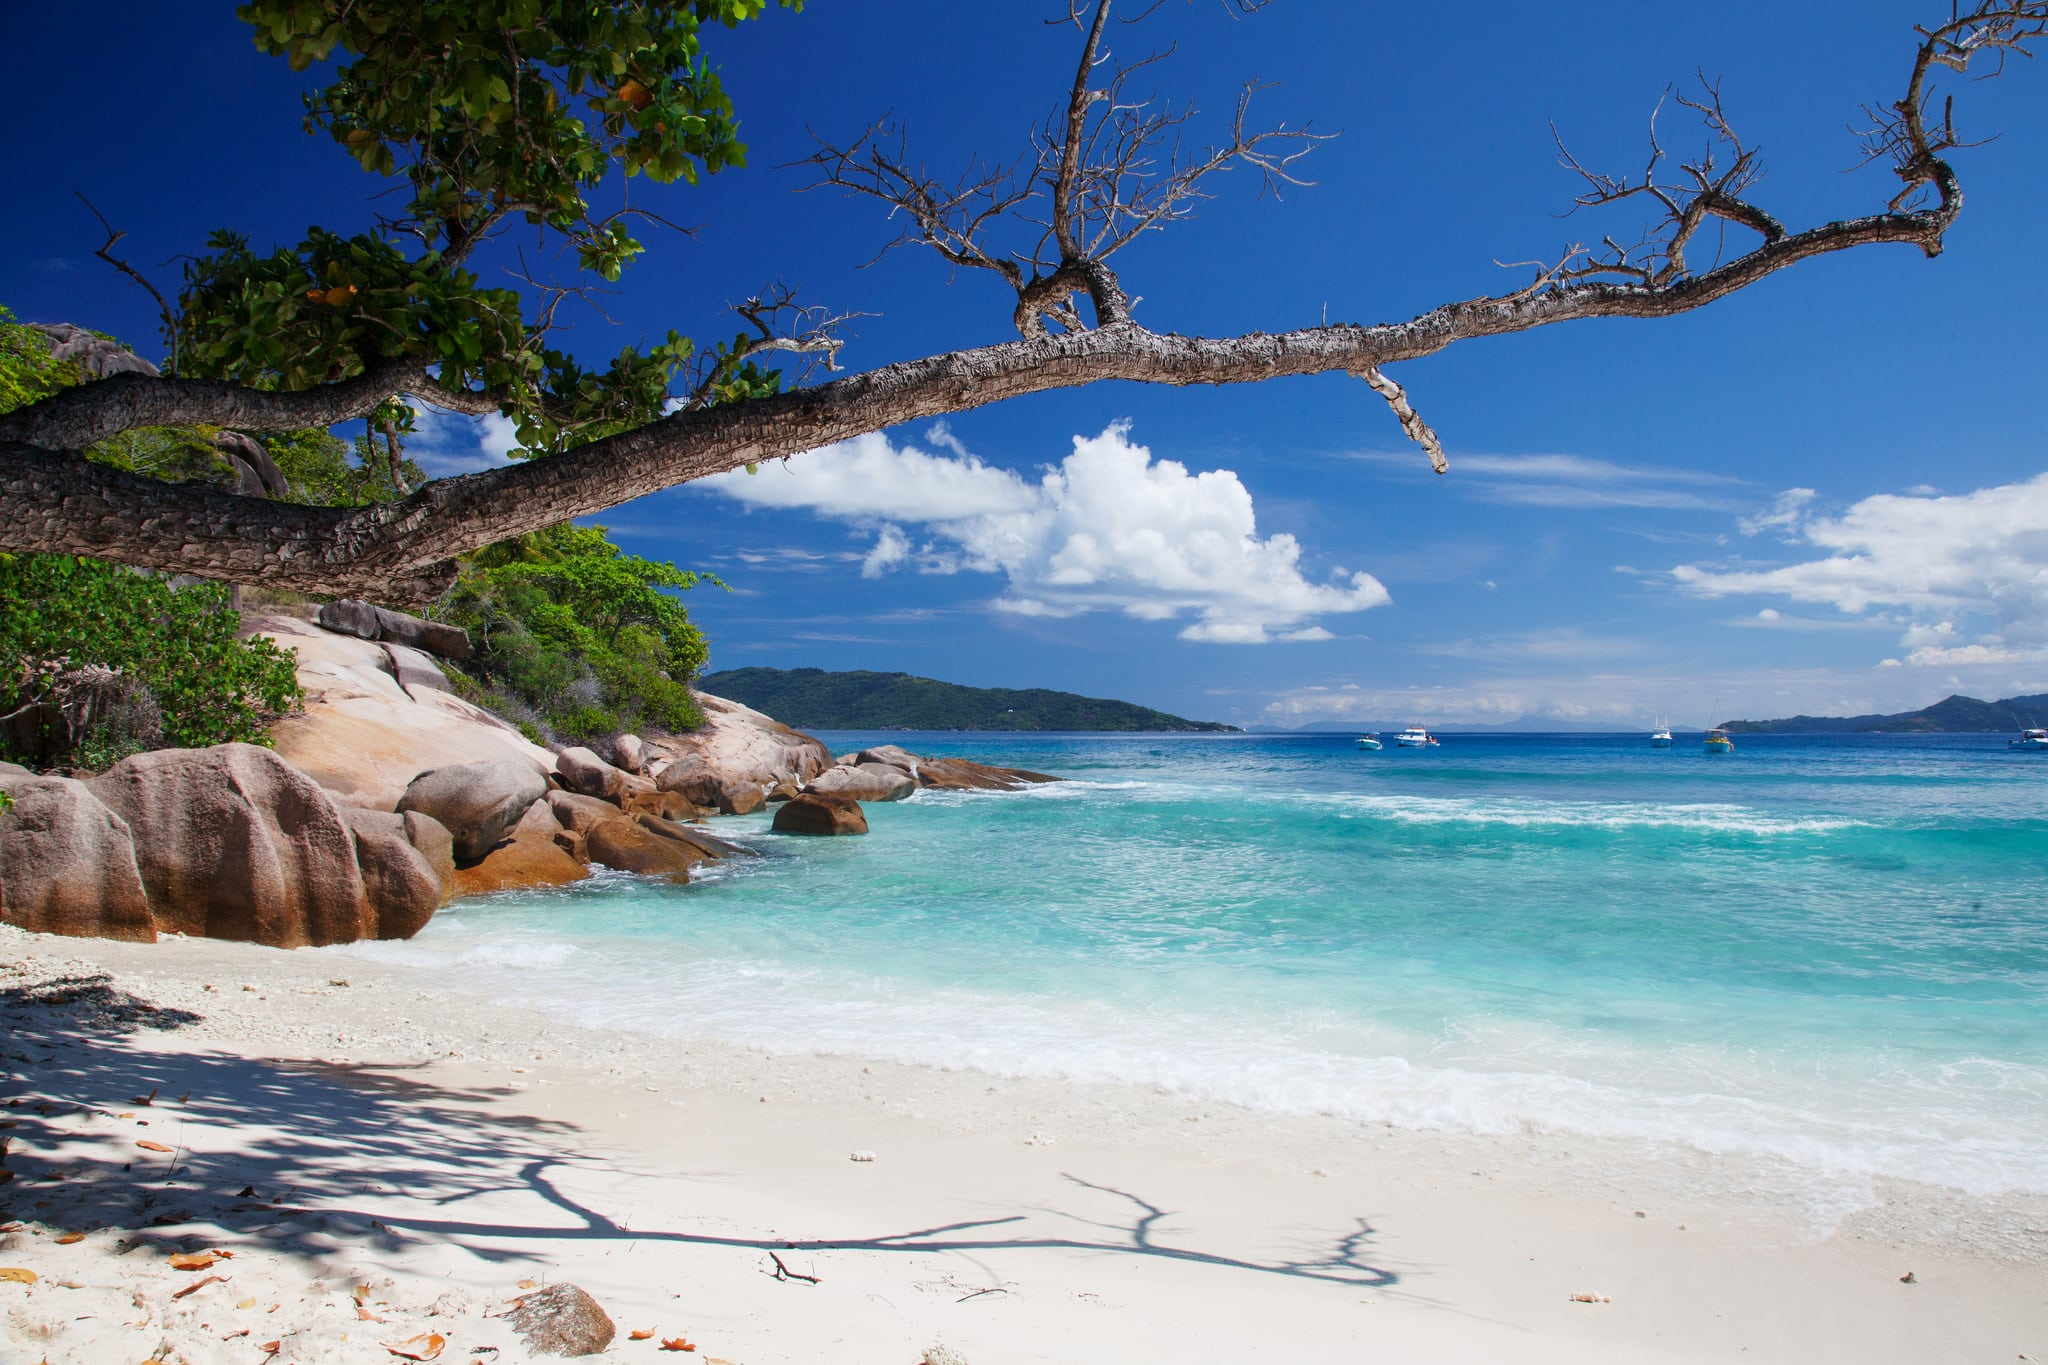 Where to go on holiday - Grande Soeur, a small island near La Digue I Pic Jean-Marie Hullot